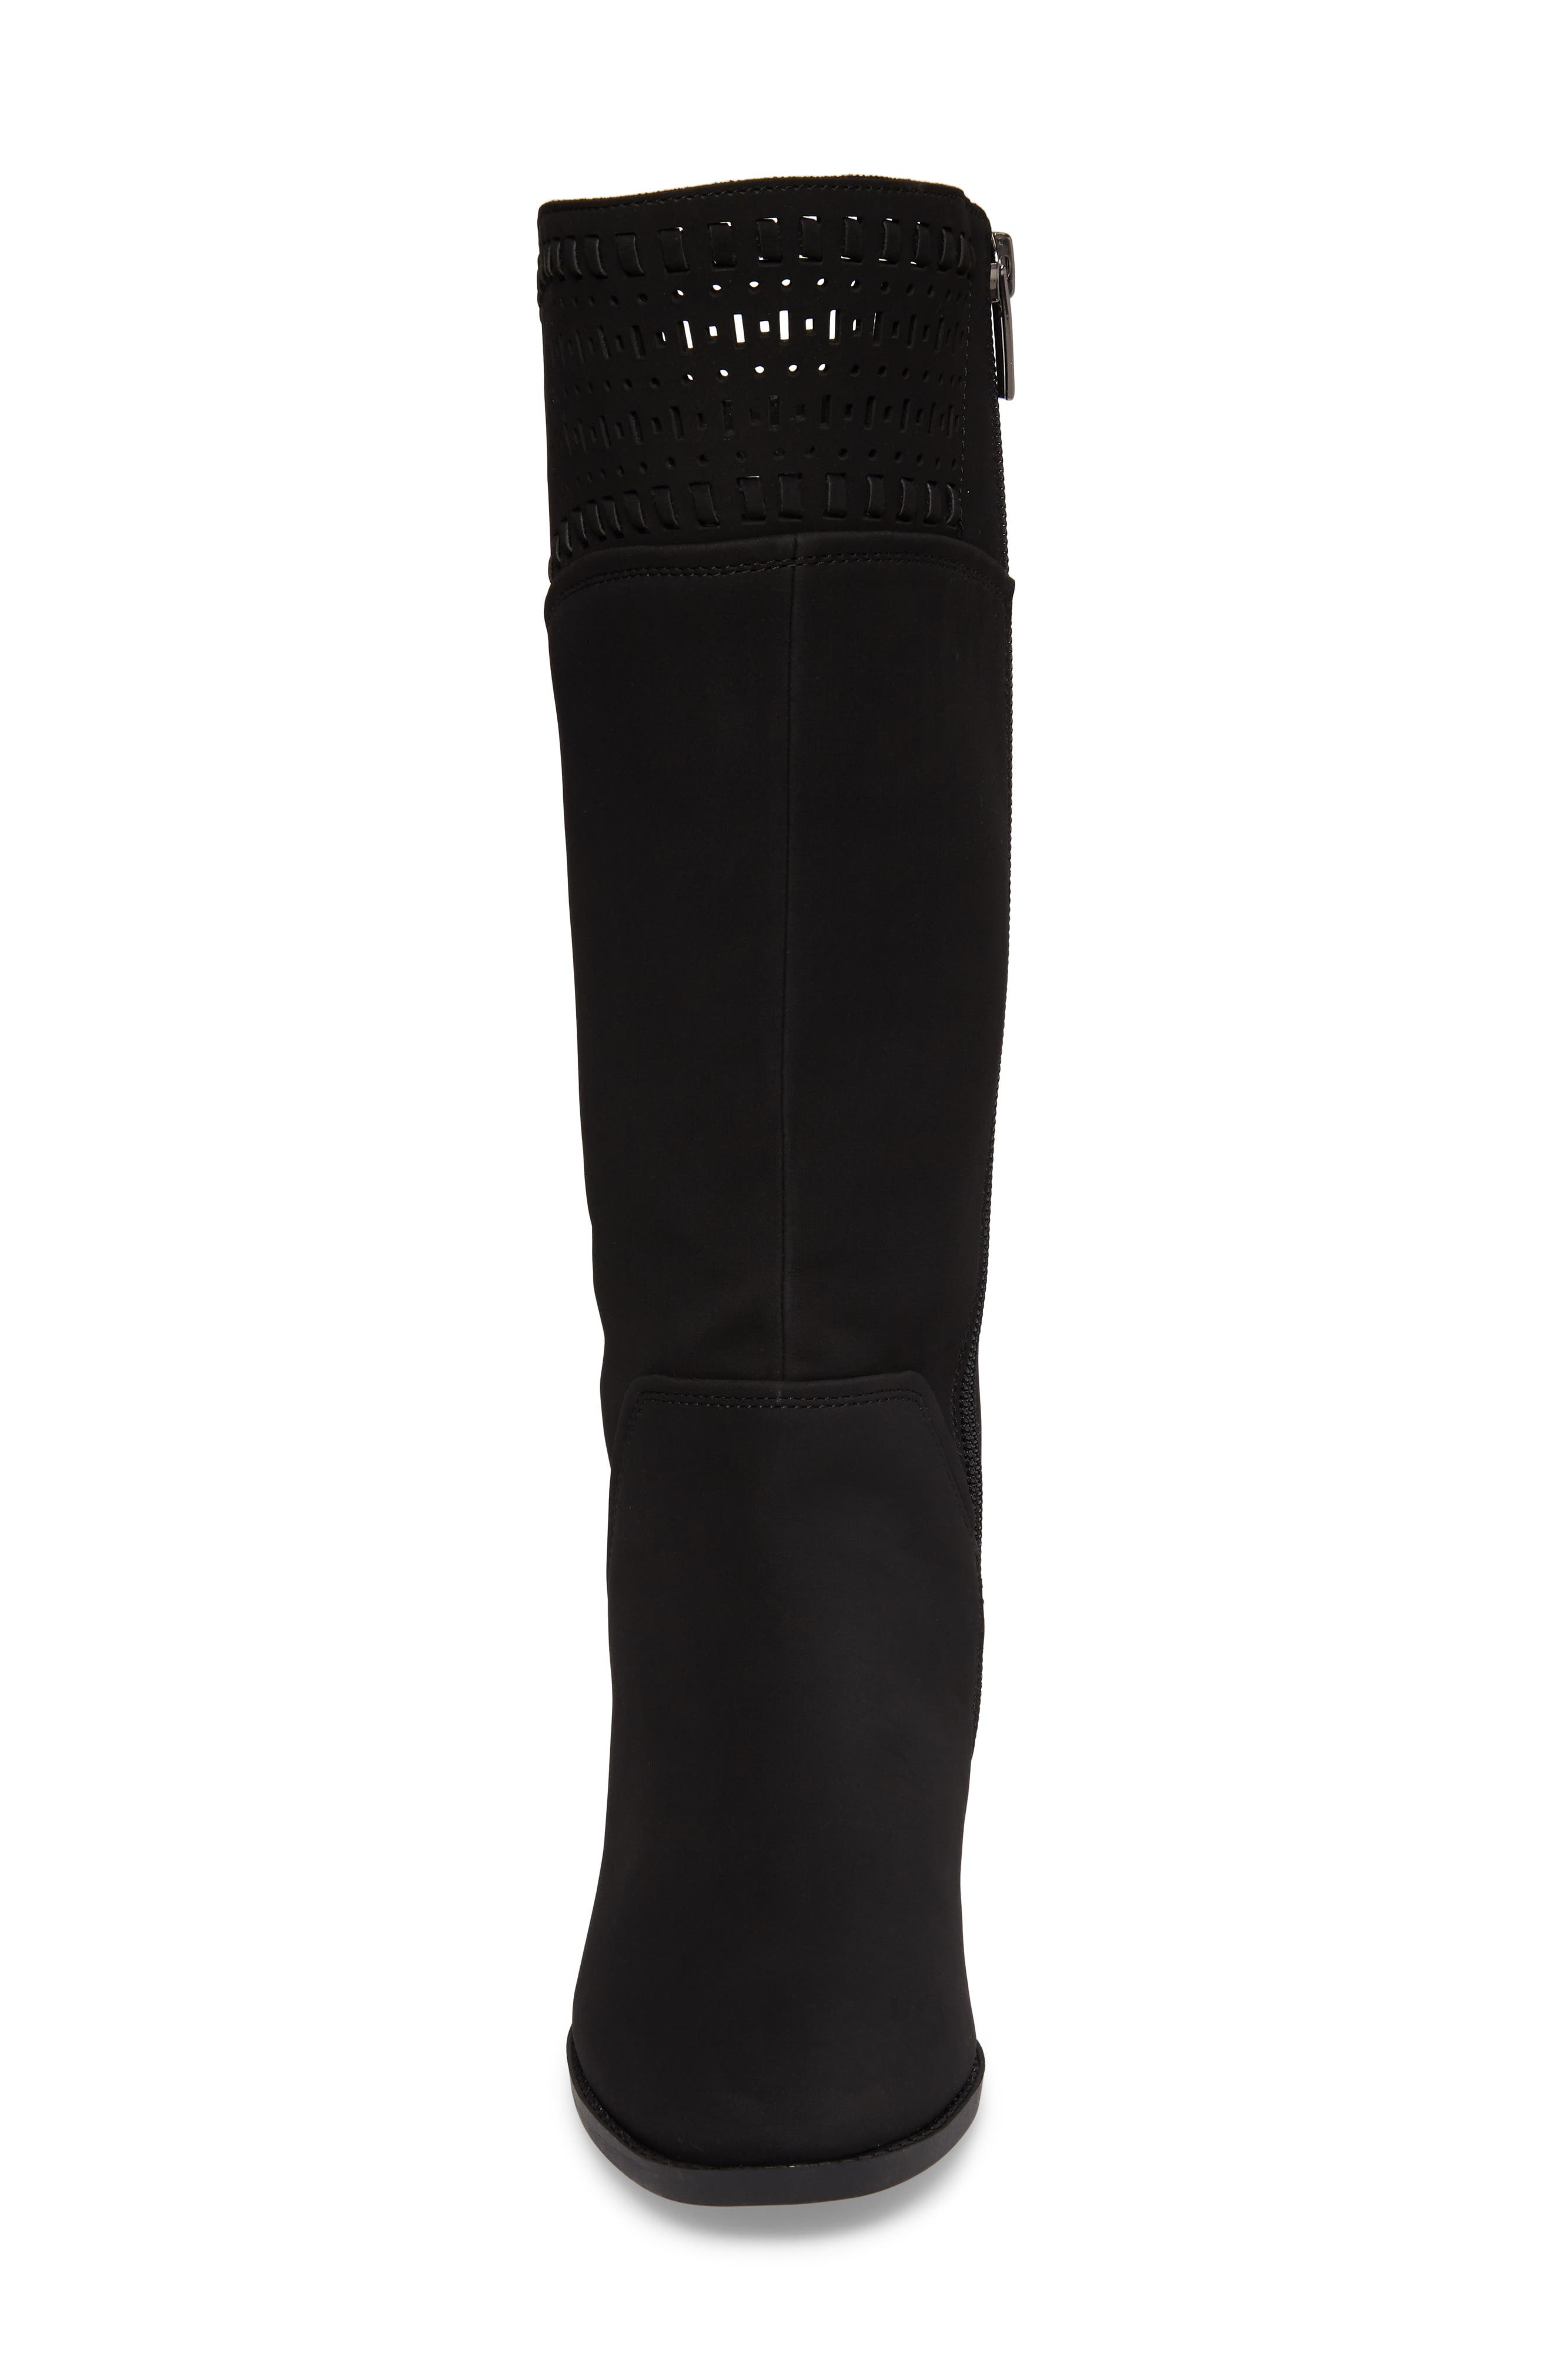 Blysse Woven Tall Boot,                             Alternate thumbnail 4, color,                             Black Suede